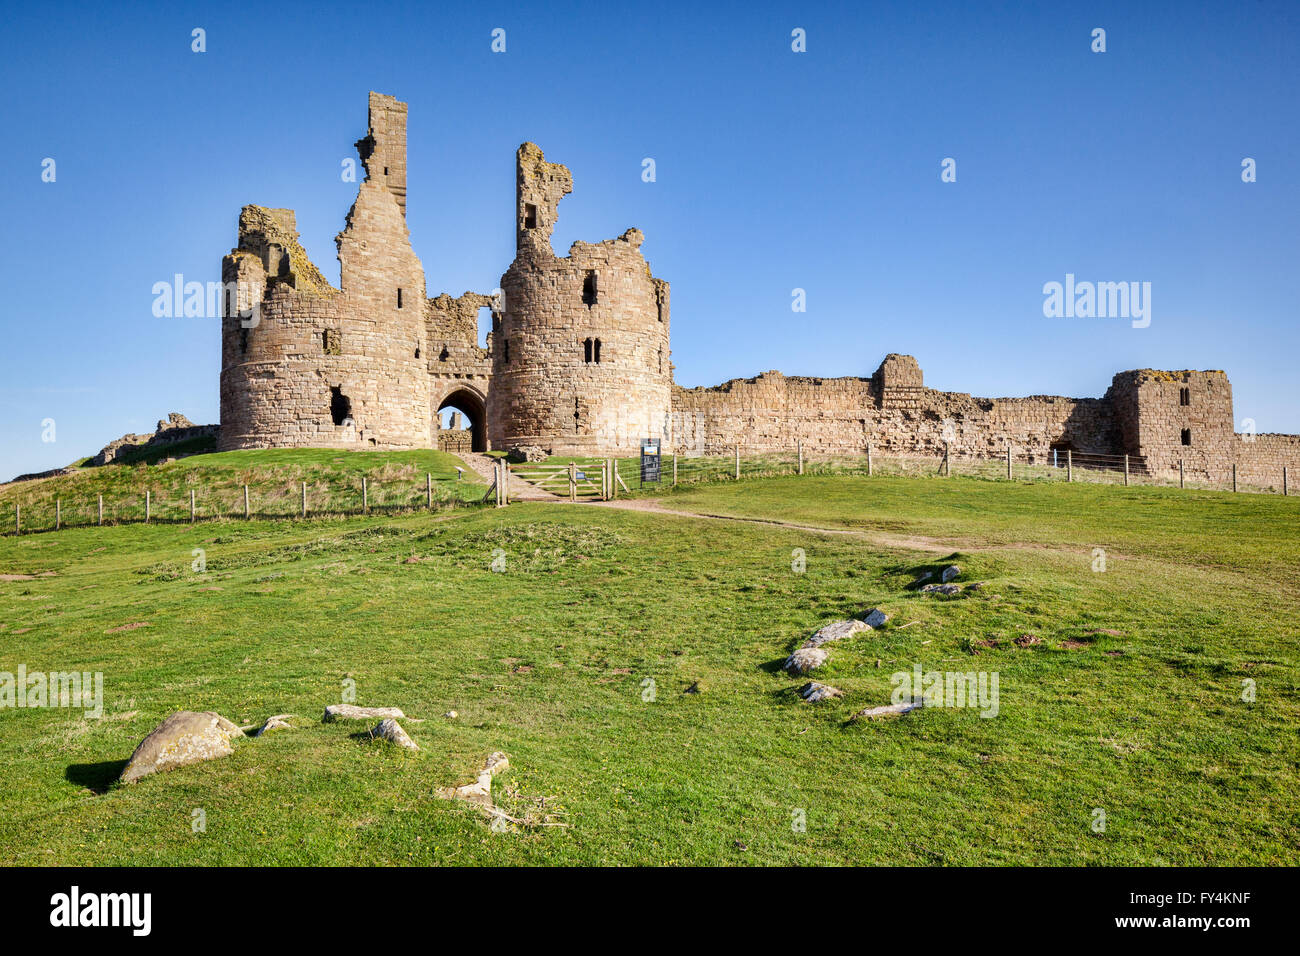 Dunstanburgh Castle on the Northumberland coast, North East England. - Stock Image